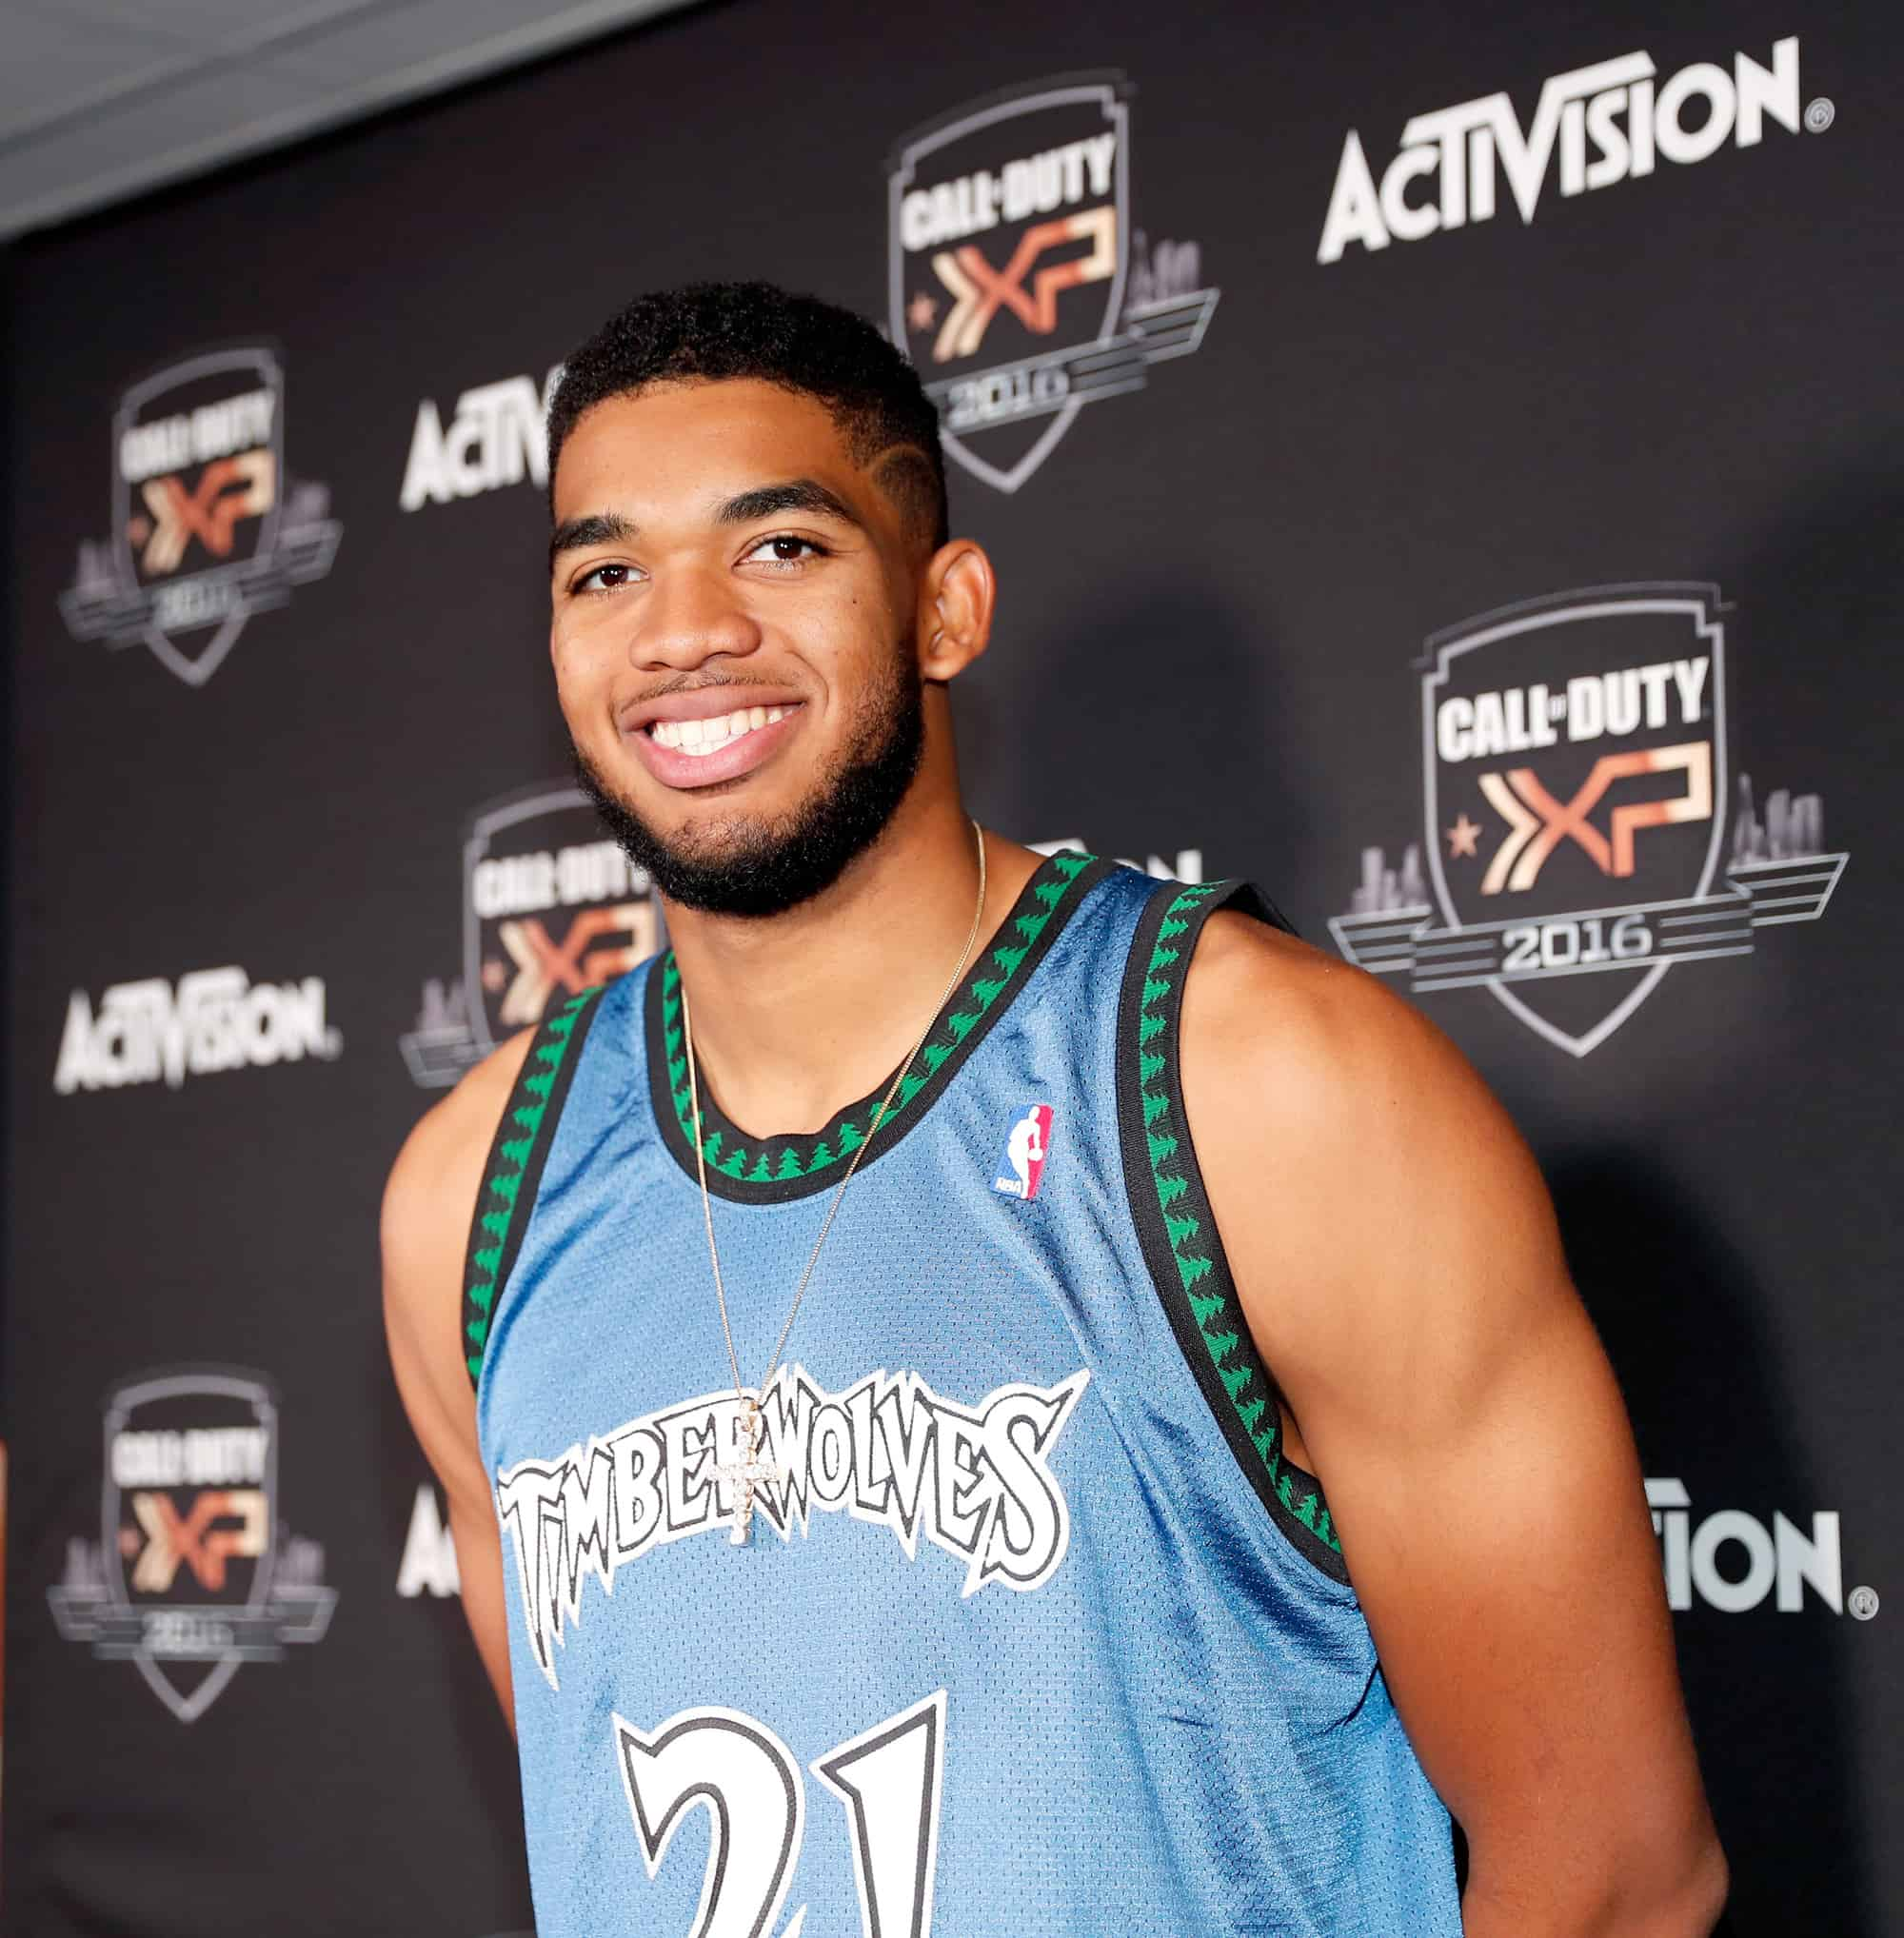 Karl-Anthony Towns reveals in an emotional video that his mother is now in a medically induced coma after testing positive for the coronavirus.